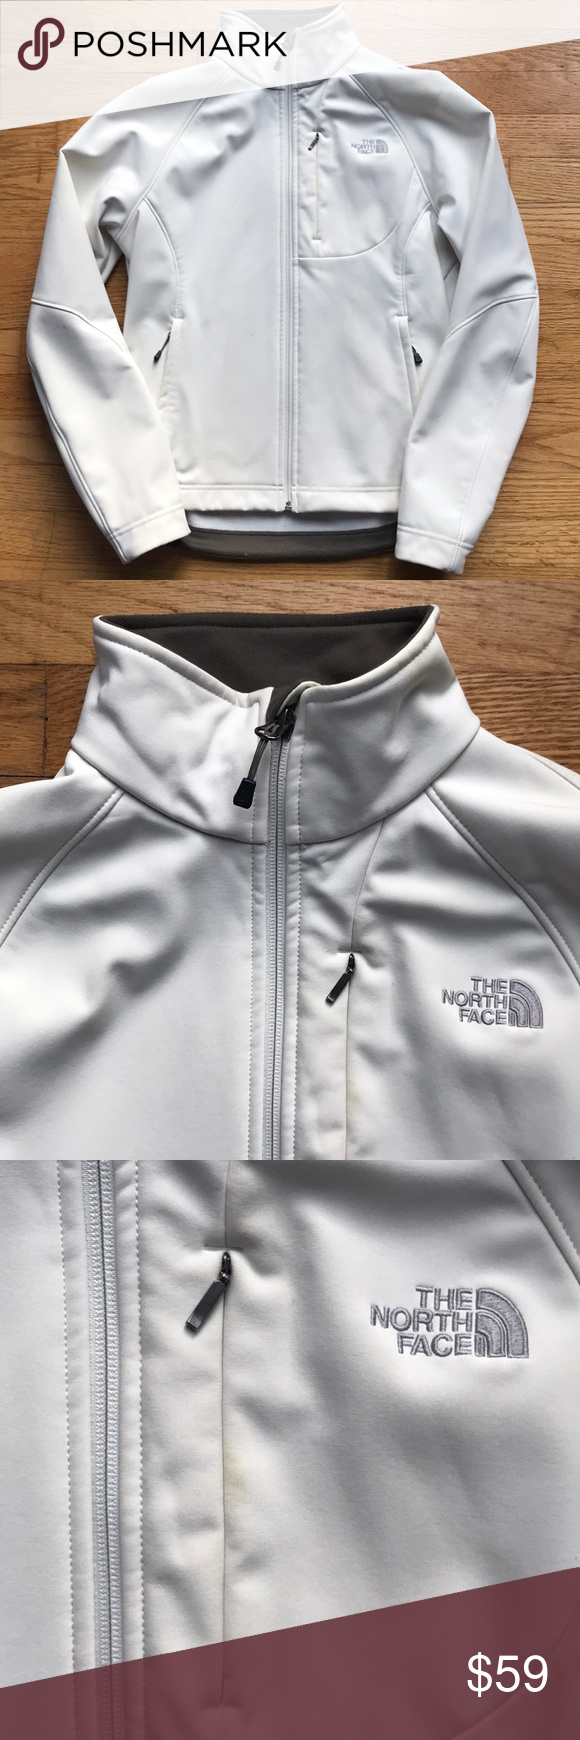 North Face Jacket North Face Jacket Euc Very Slight Discolouration That Will Come Out In The Wash White Cre North Face Jacket Beautiful Coat Fashion [ 1740 x 580 Pixel ]